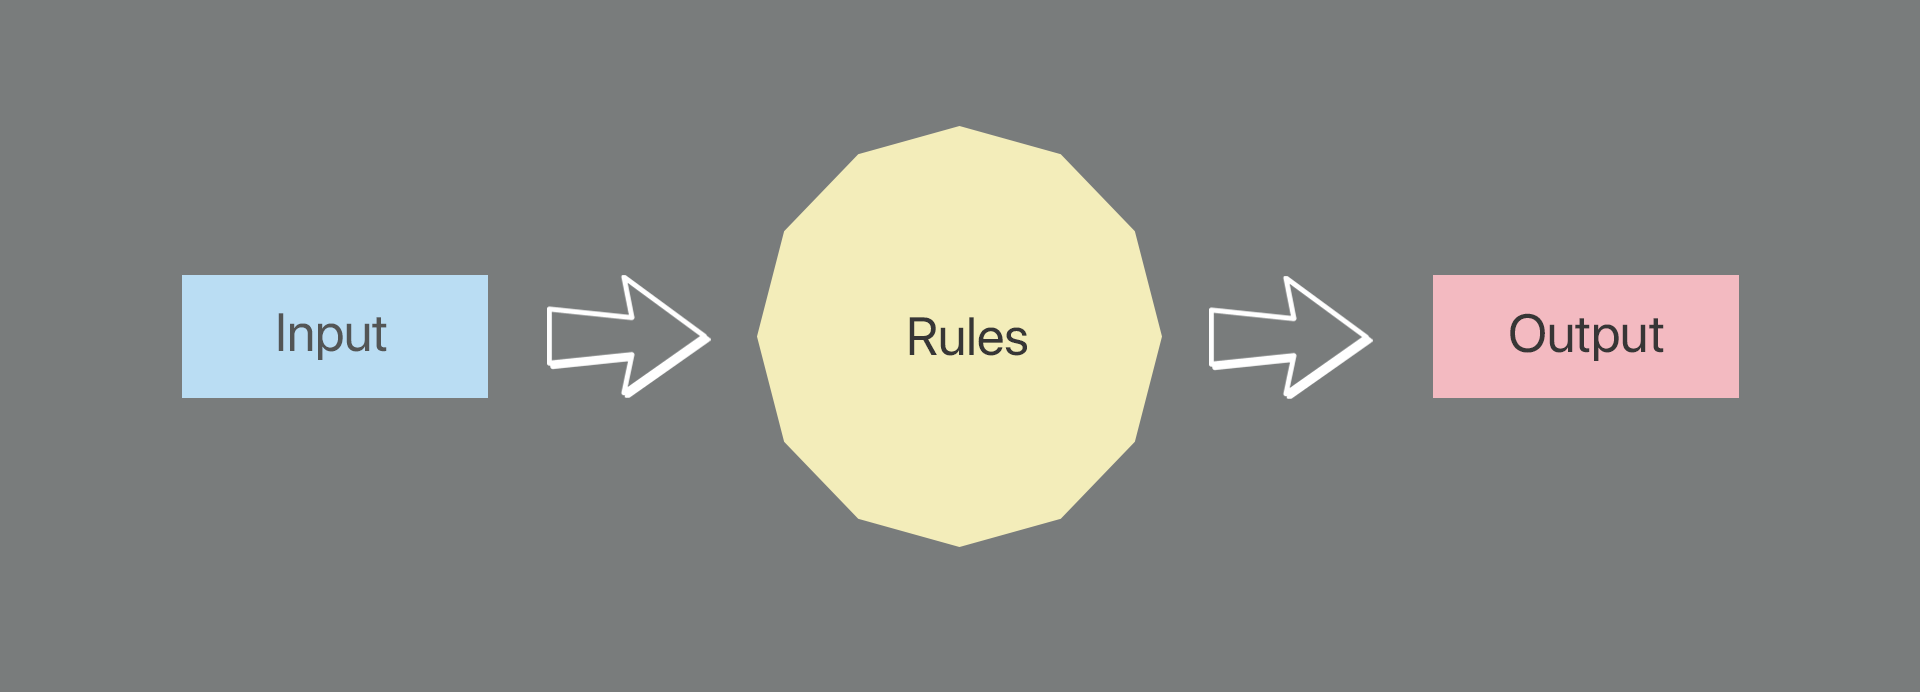 A diagram: on the left hand side is a box labelled 'Input', followed by an arrow to a box labelled 'Rules', followed by a box to an arrow labelled 'Output'.